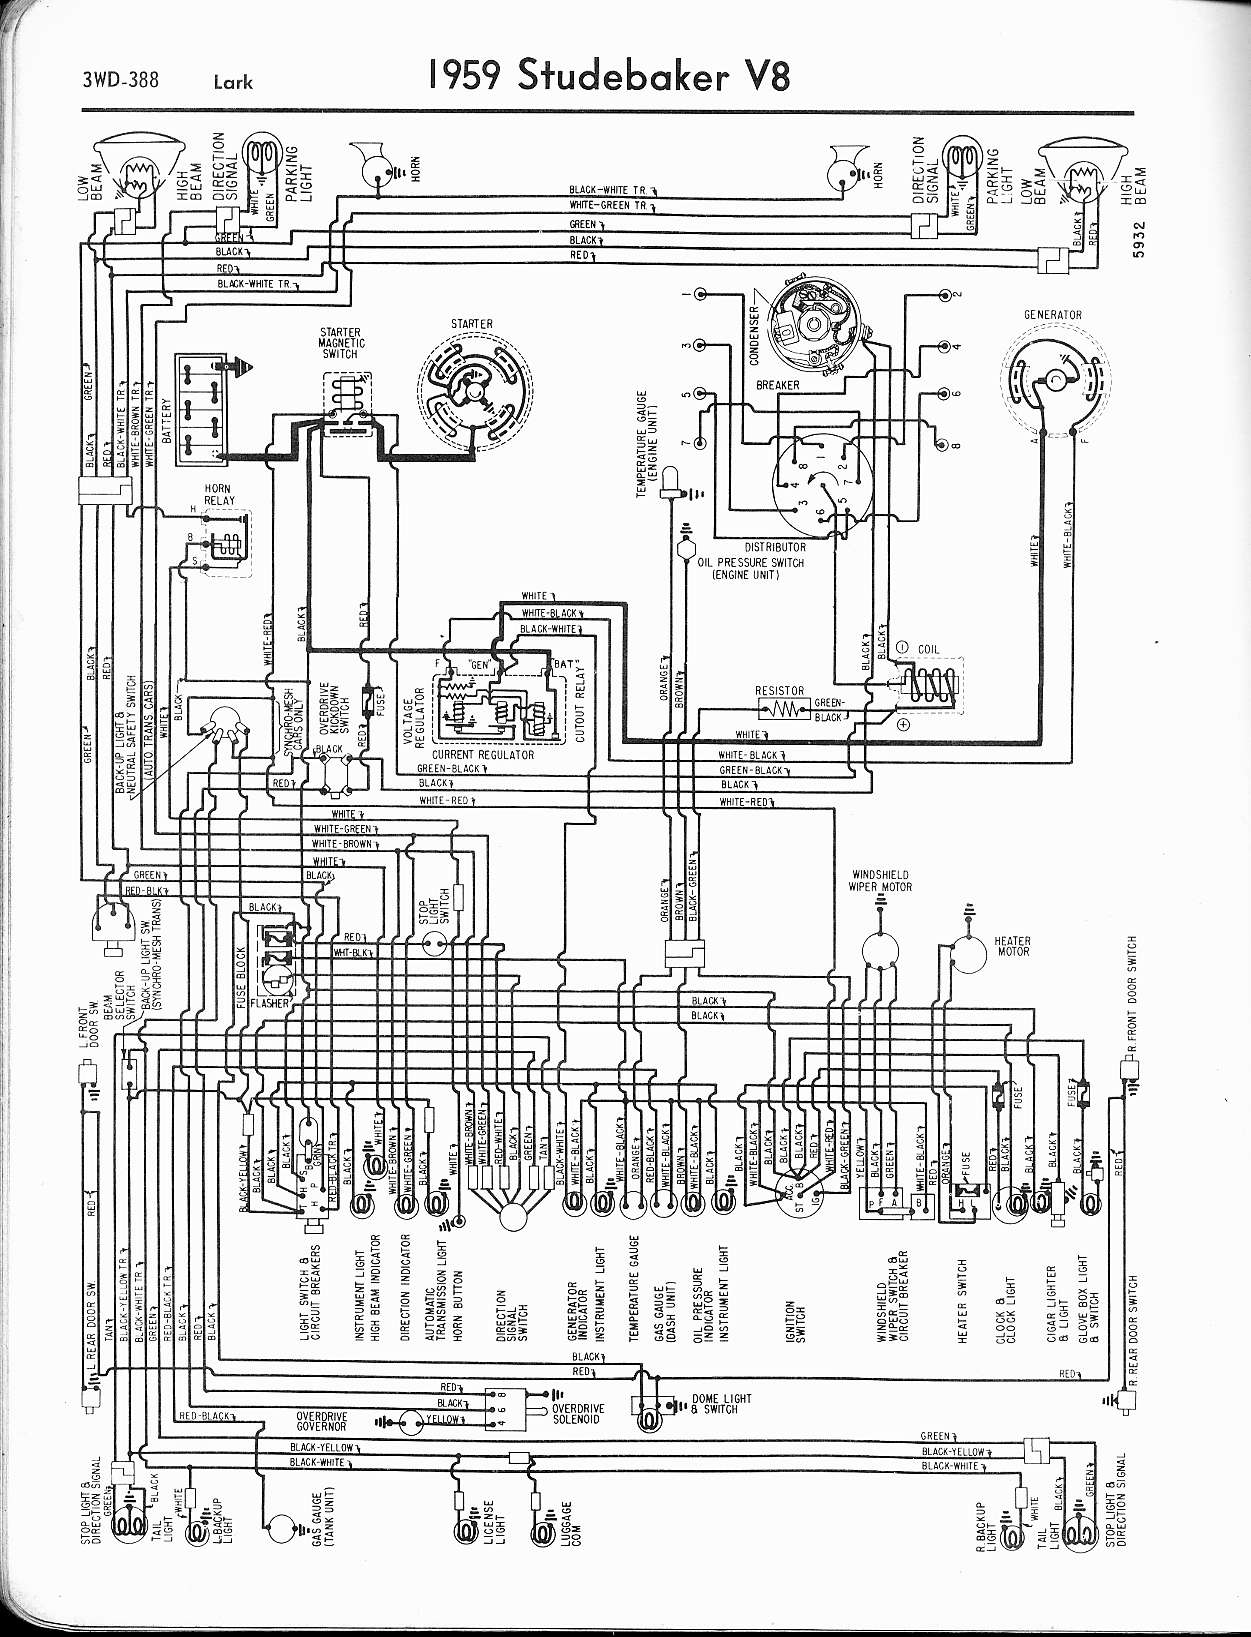 hight resolution of studebaker wiring diagrams the old car manual project studebaker champion 1963 studebaker lark